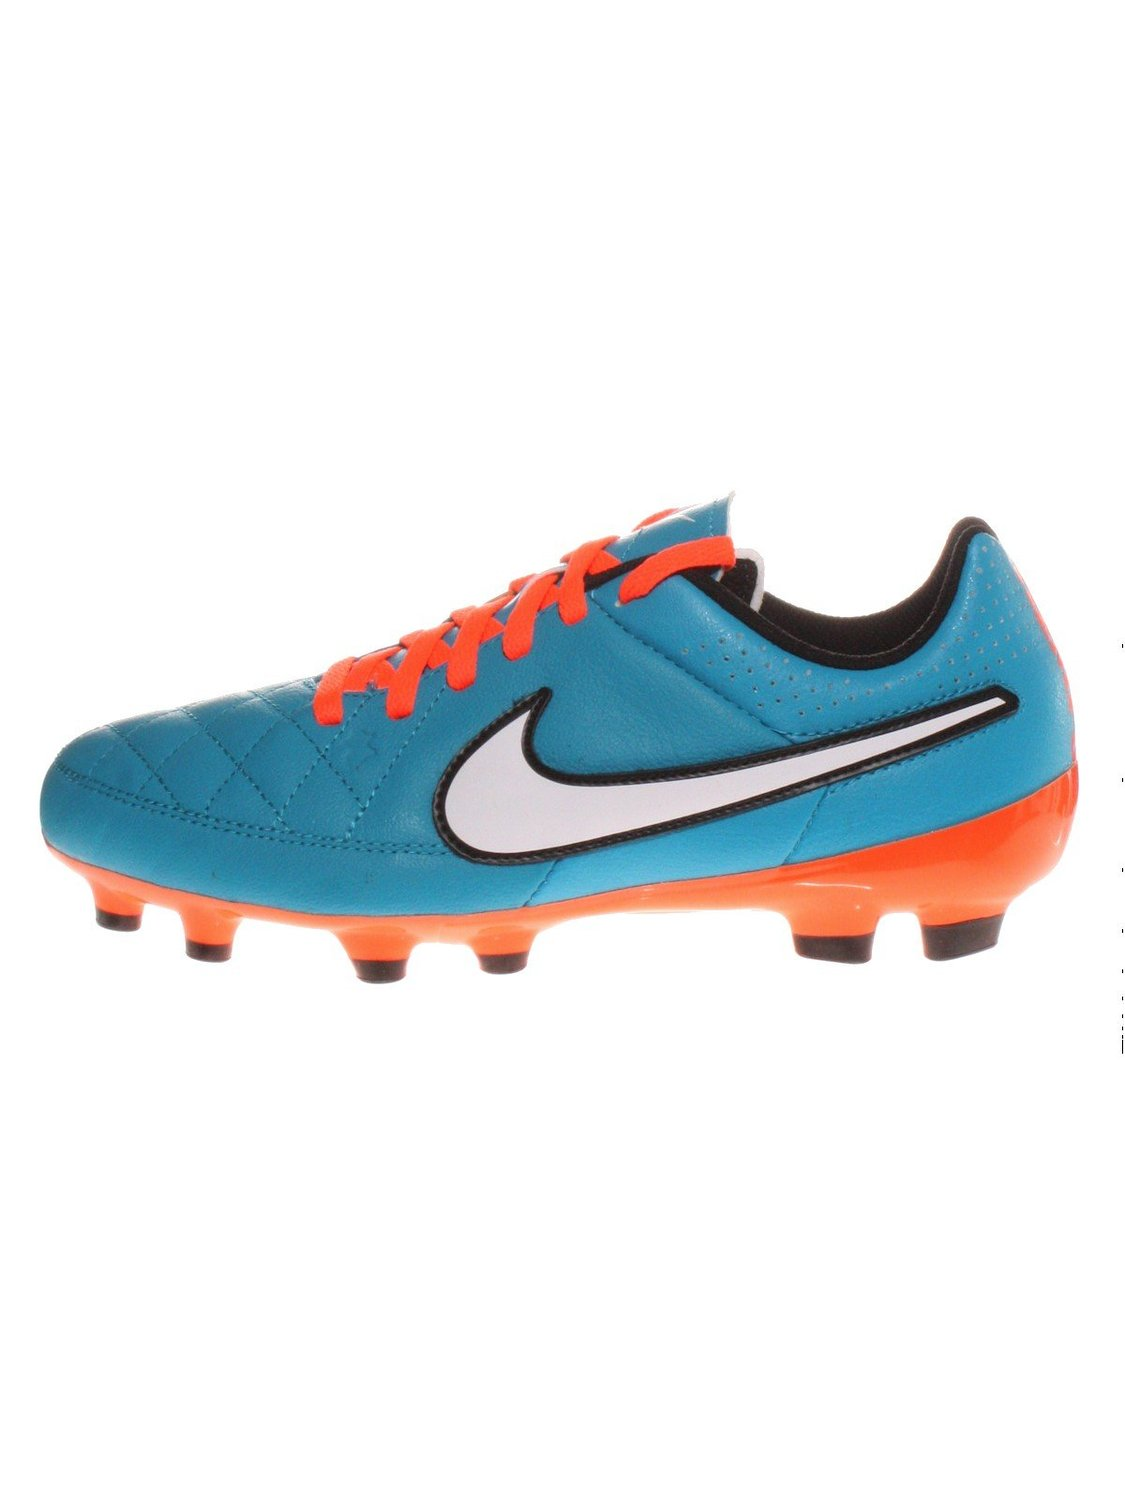 newest f79d9 eb20d Get Quotations · Nike Kids Jr Tiempo Genio Leather FG Soccer Cleat